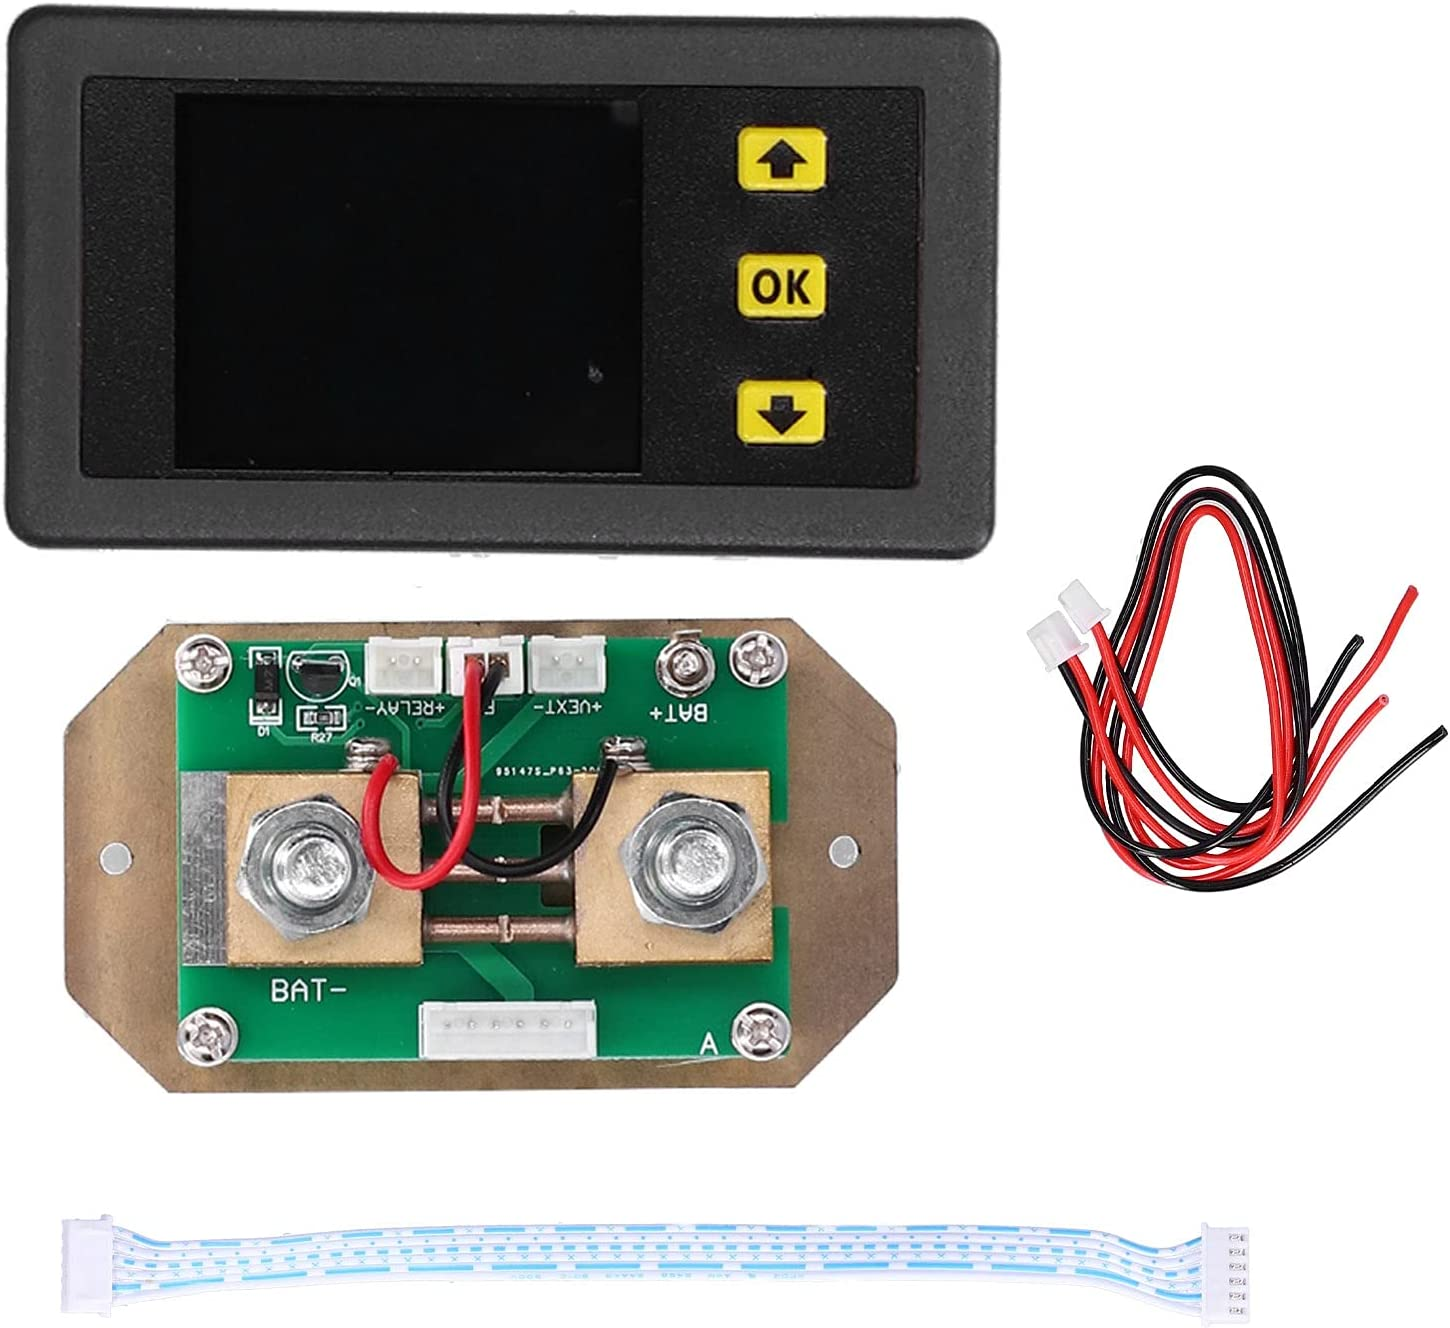 New product type LCD Combination Meter Voltage Monitoring Power Current New Free Shipping Capacity